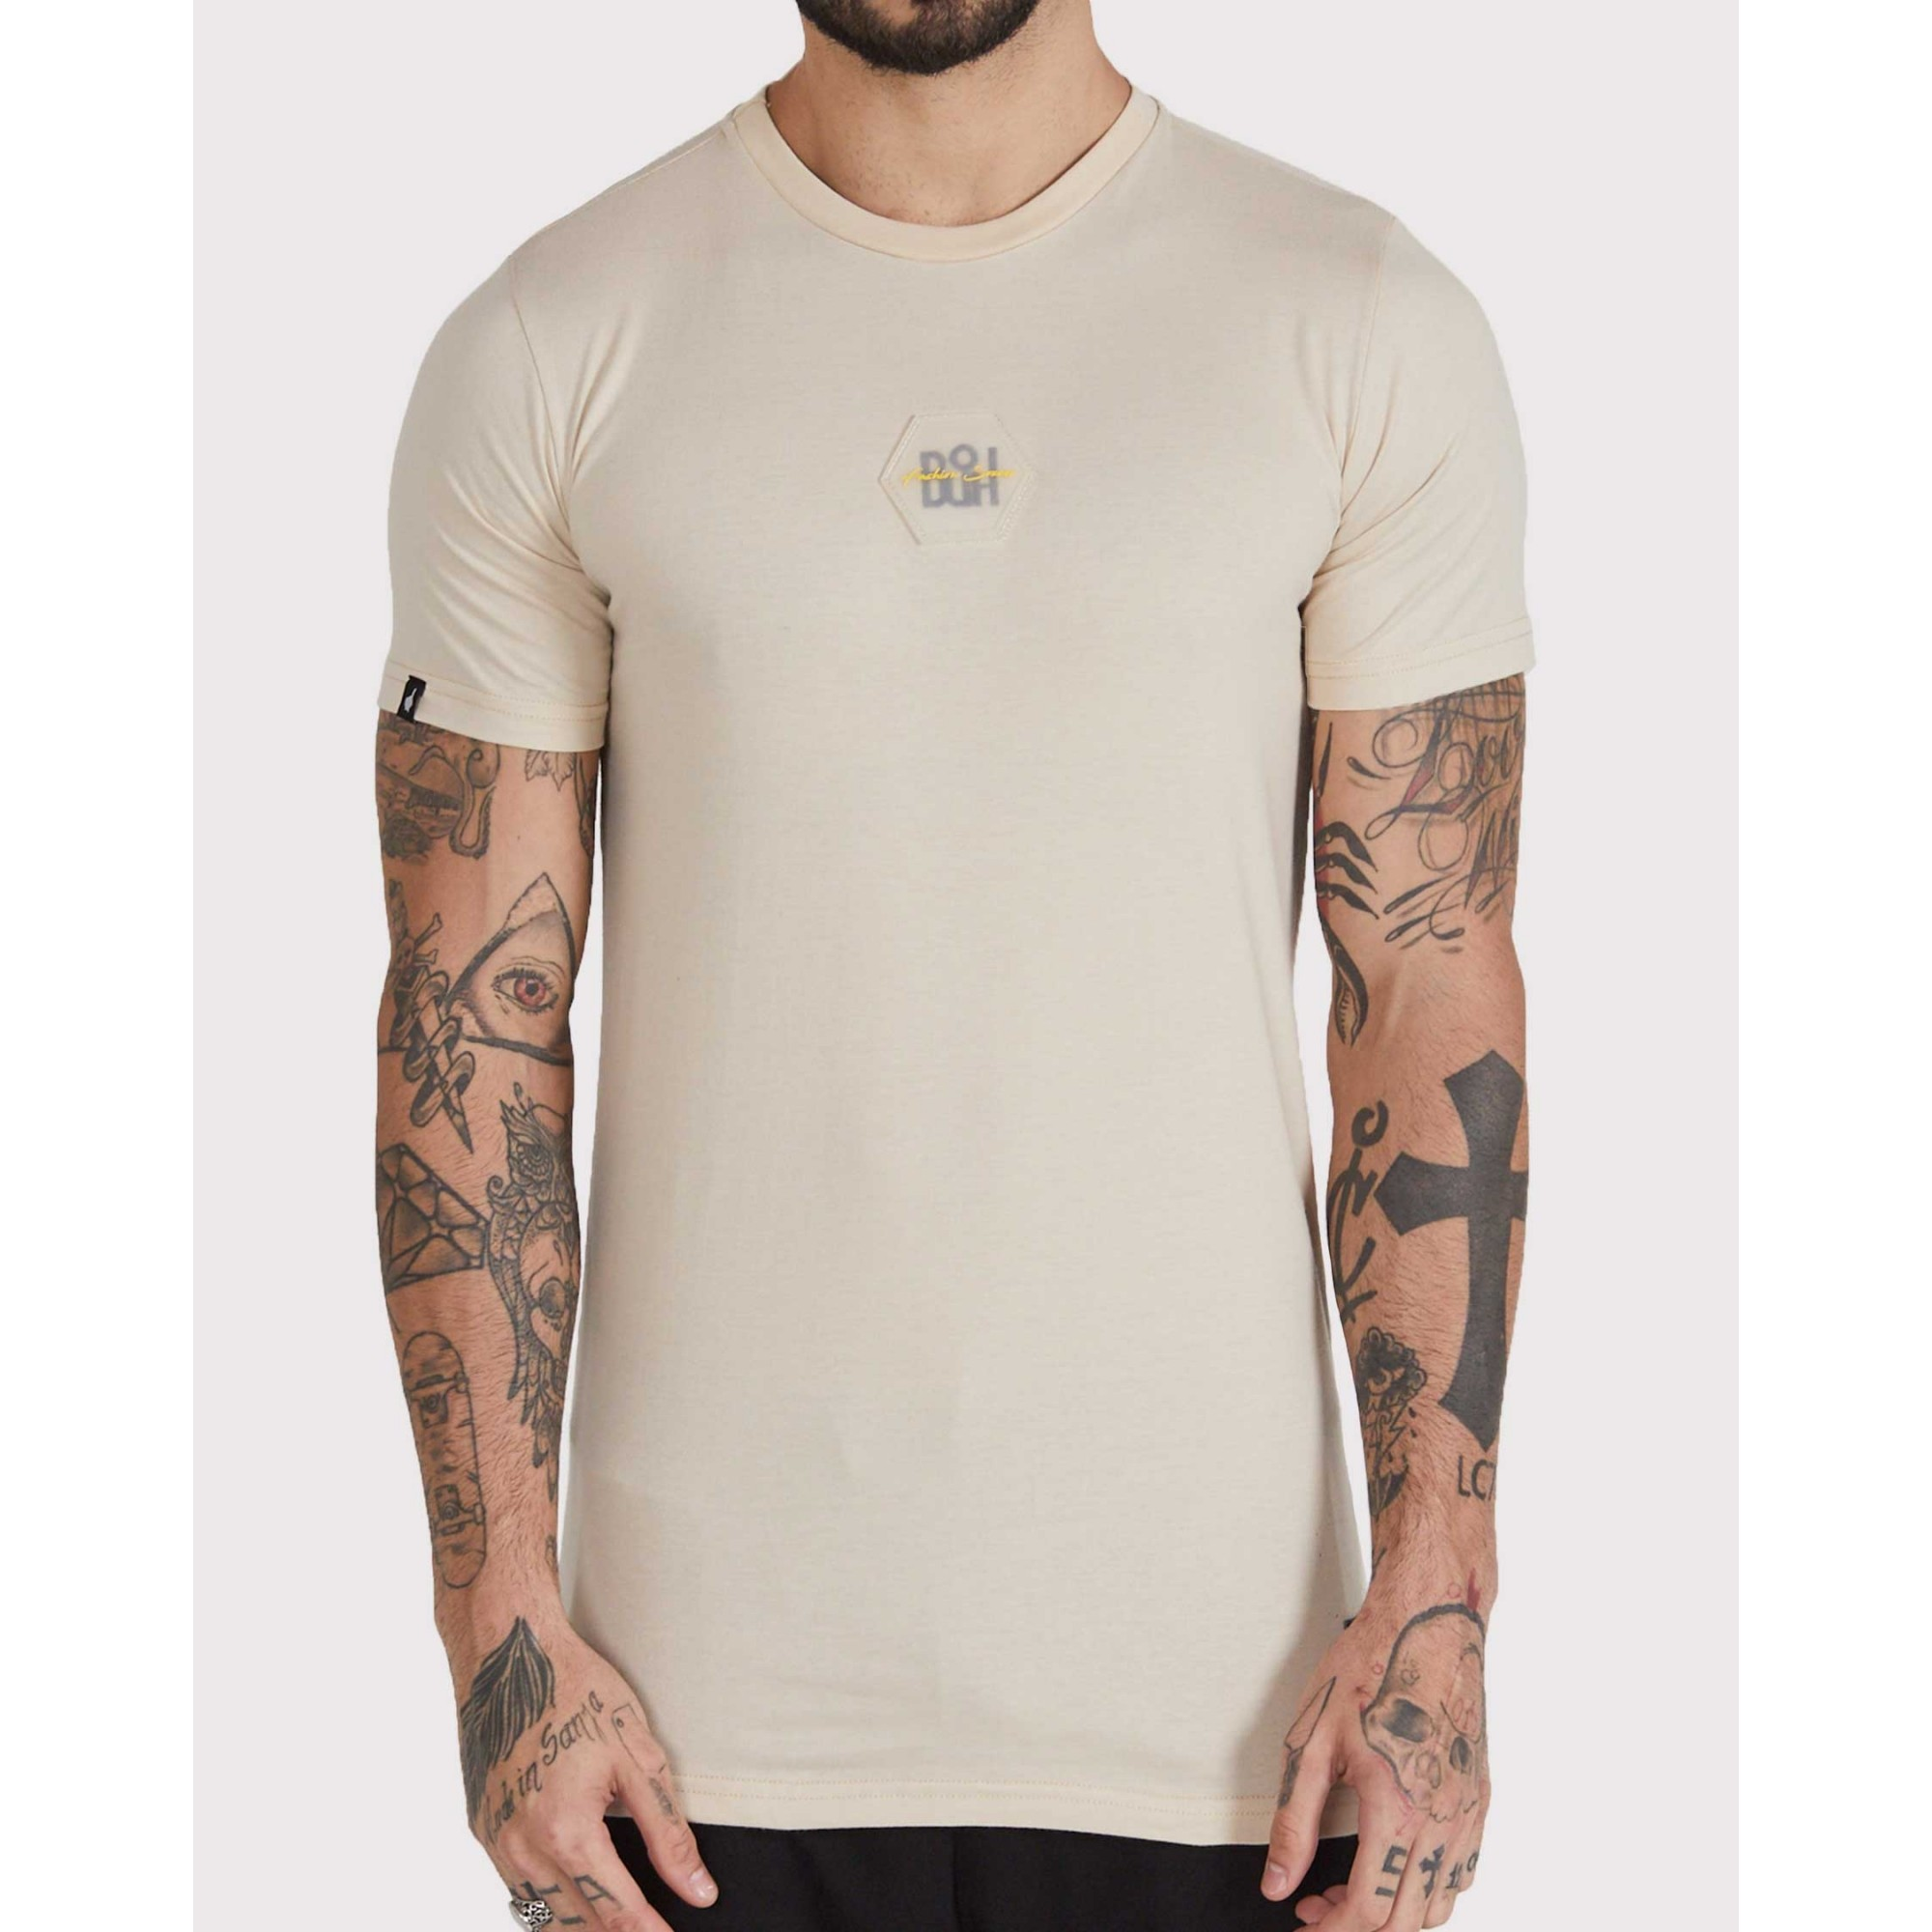 Camiseta Buh Bordado Rubber Bege